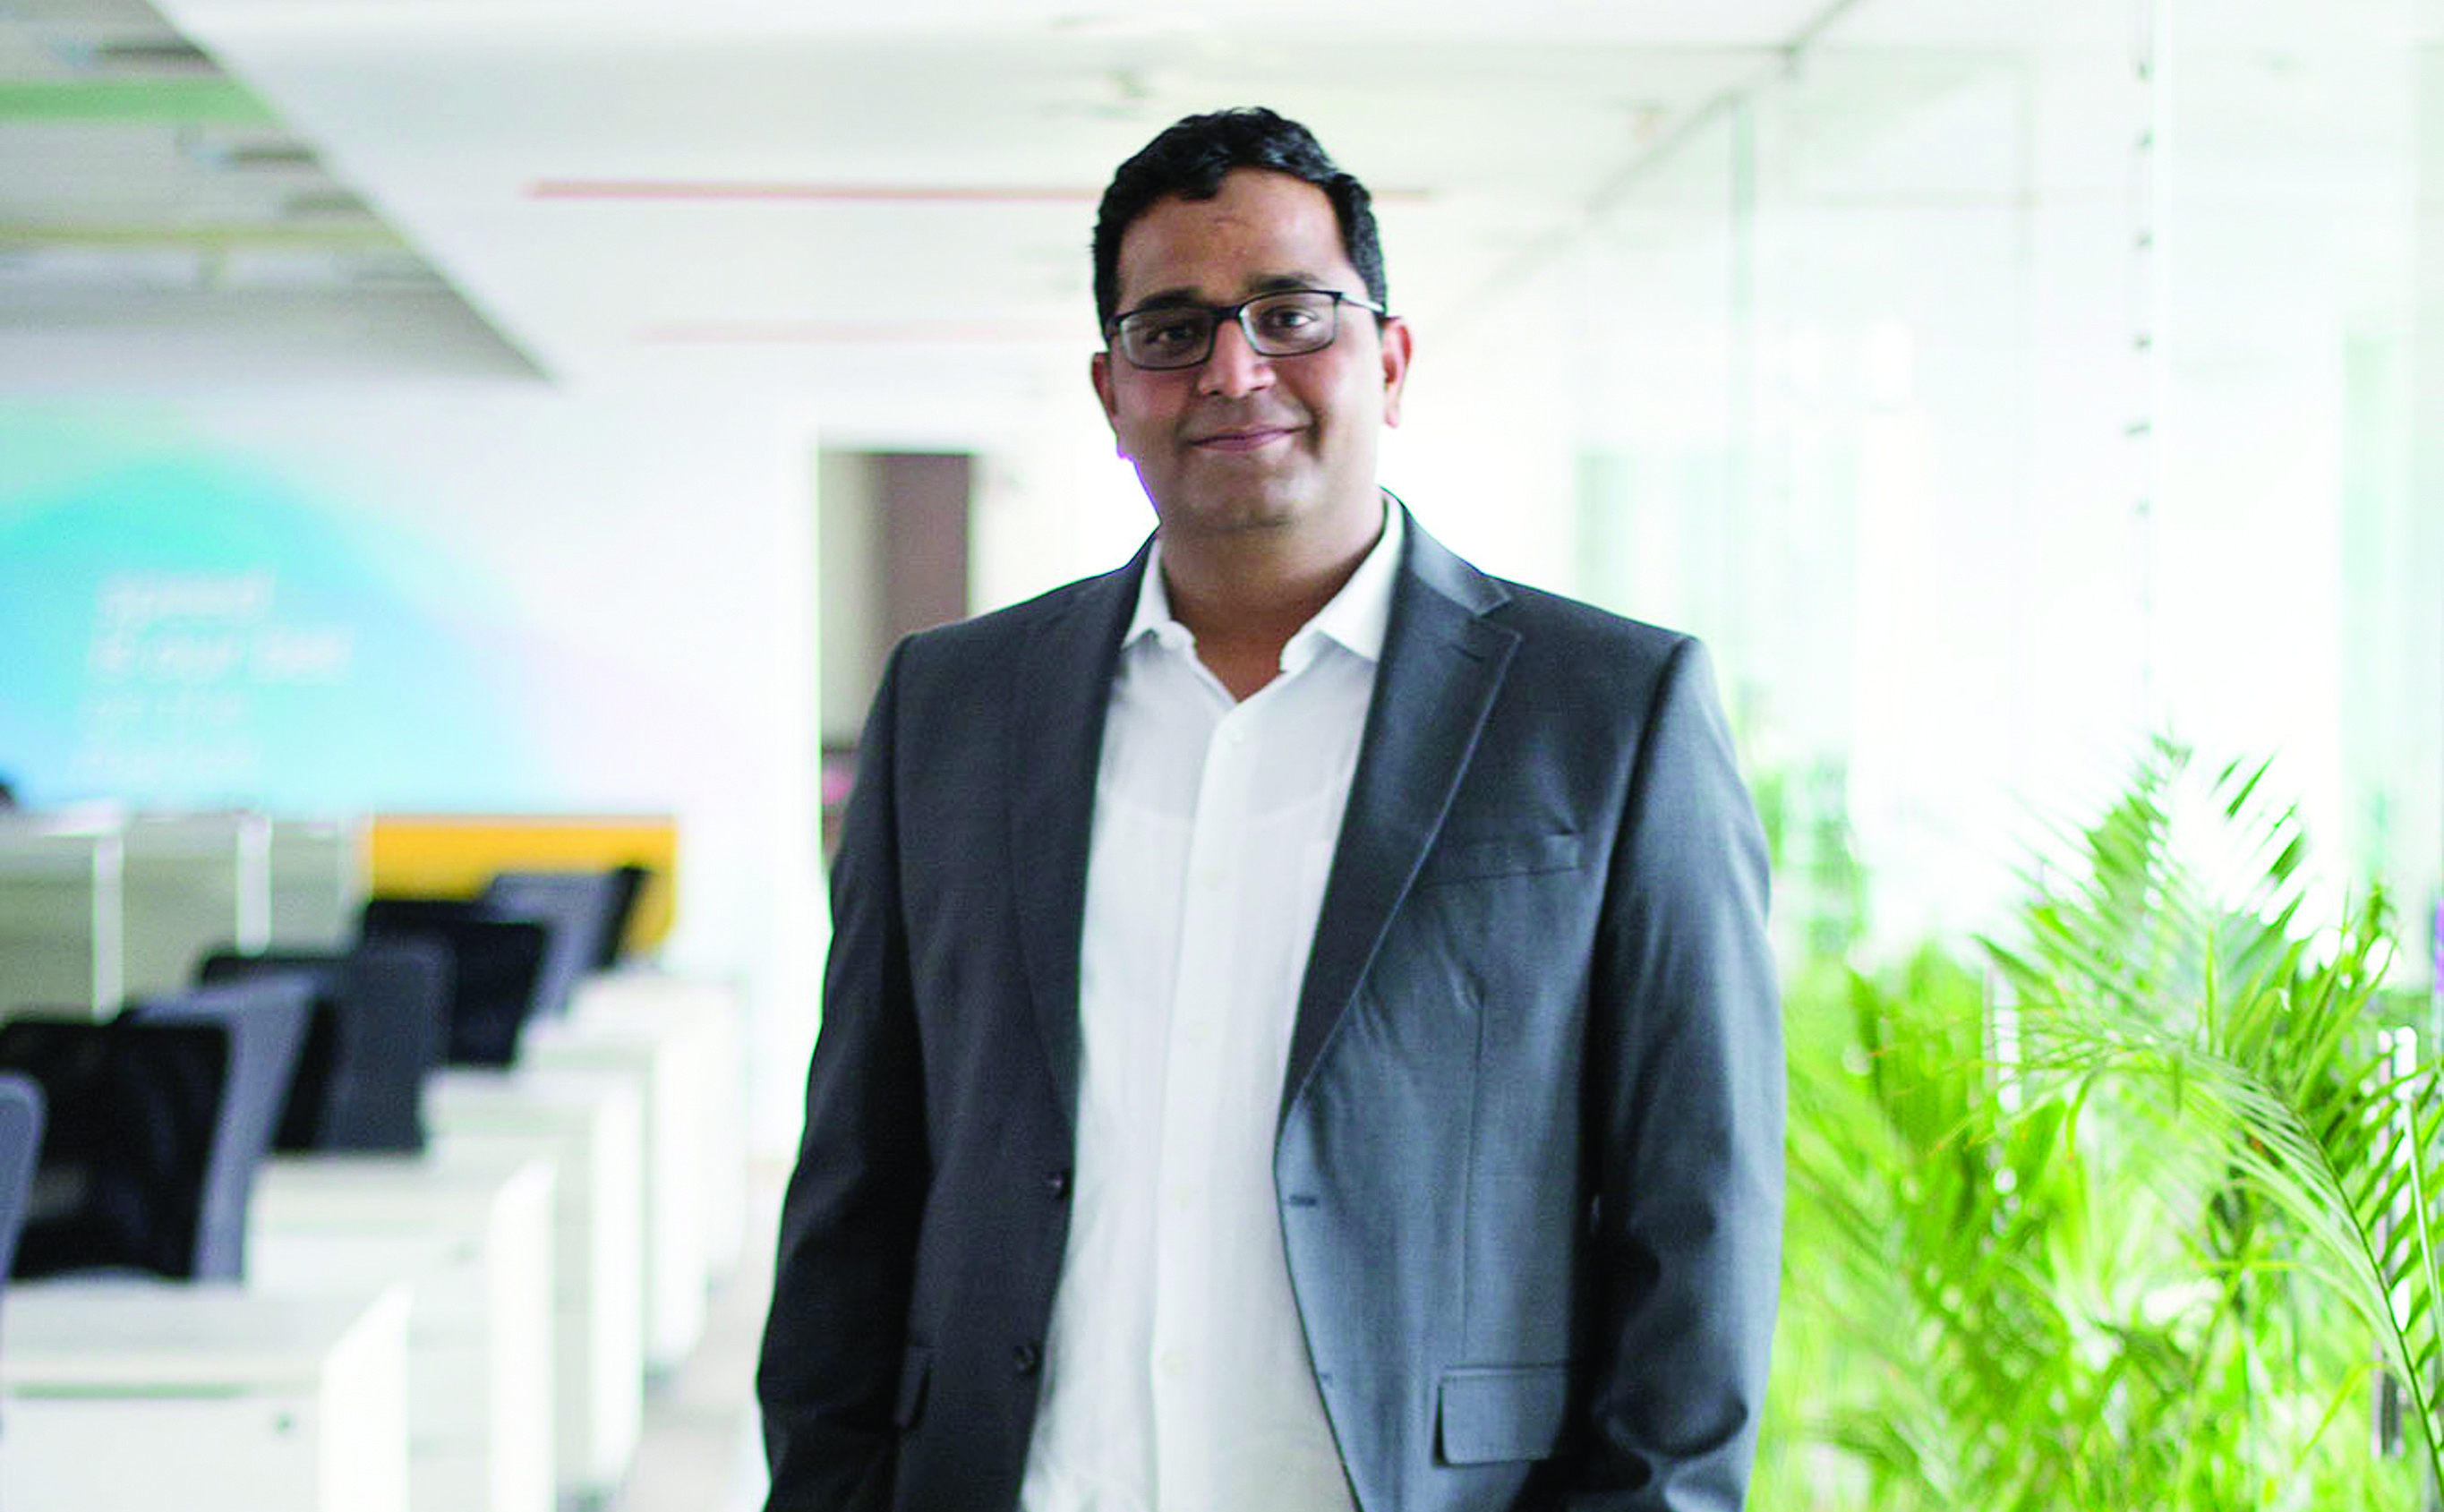 Paytm Founder & CEO